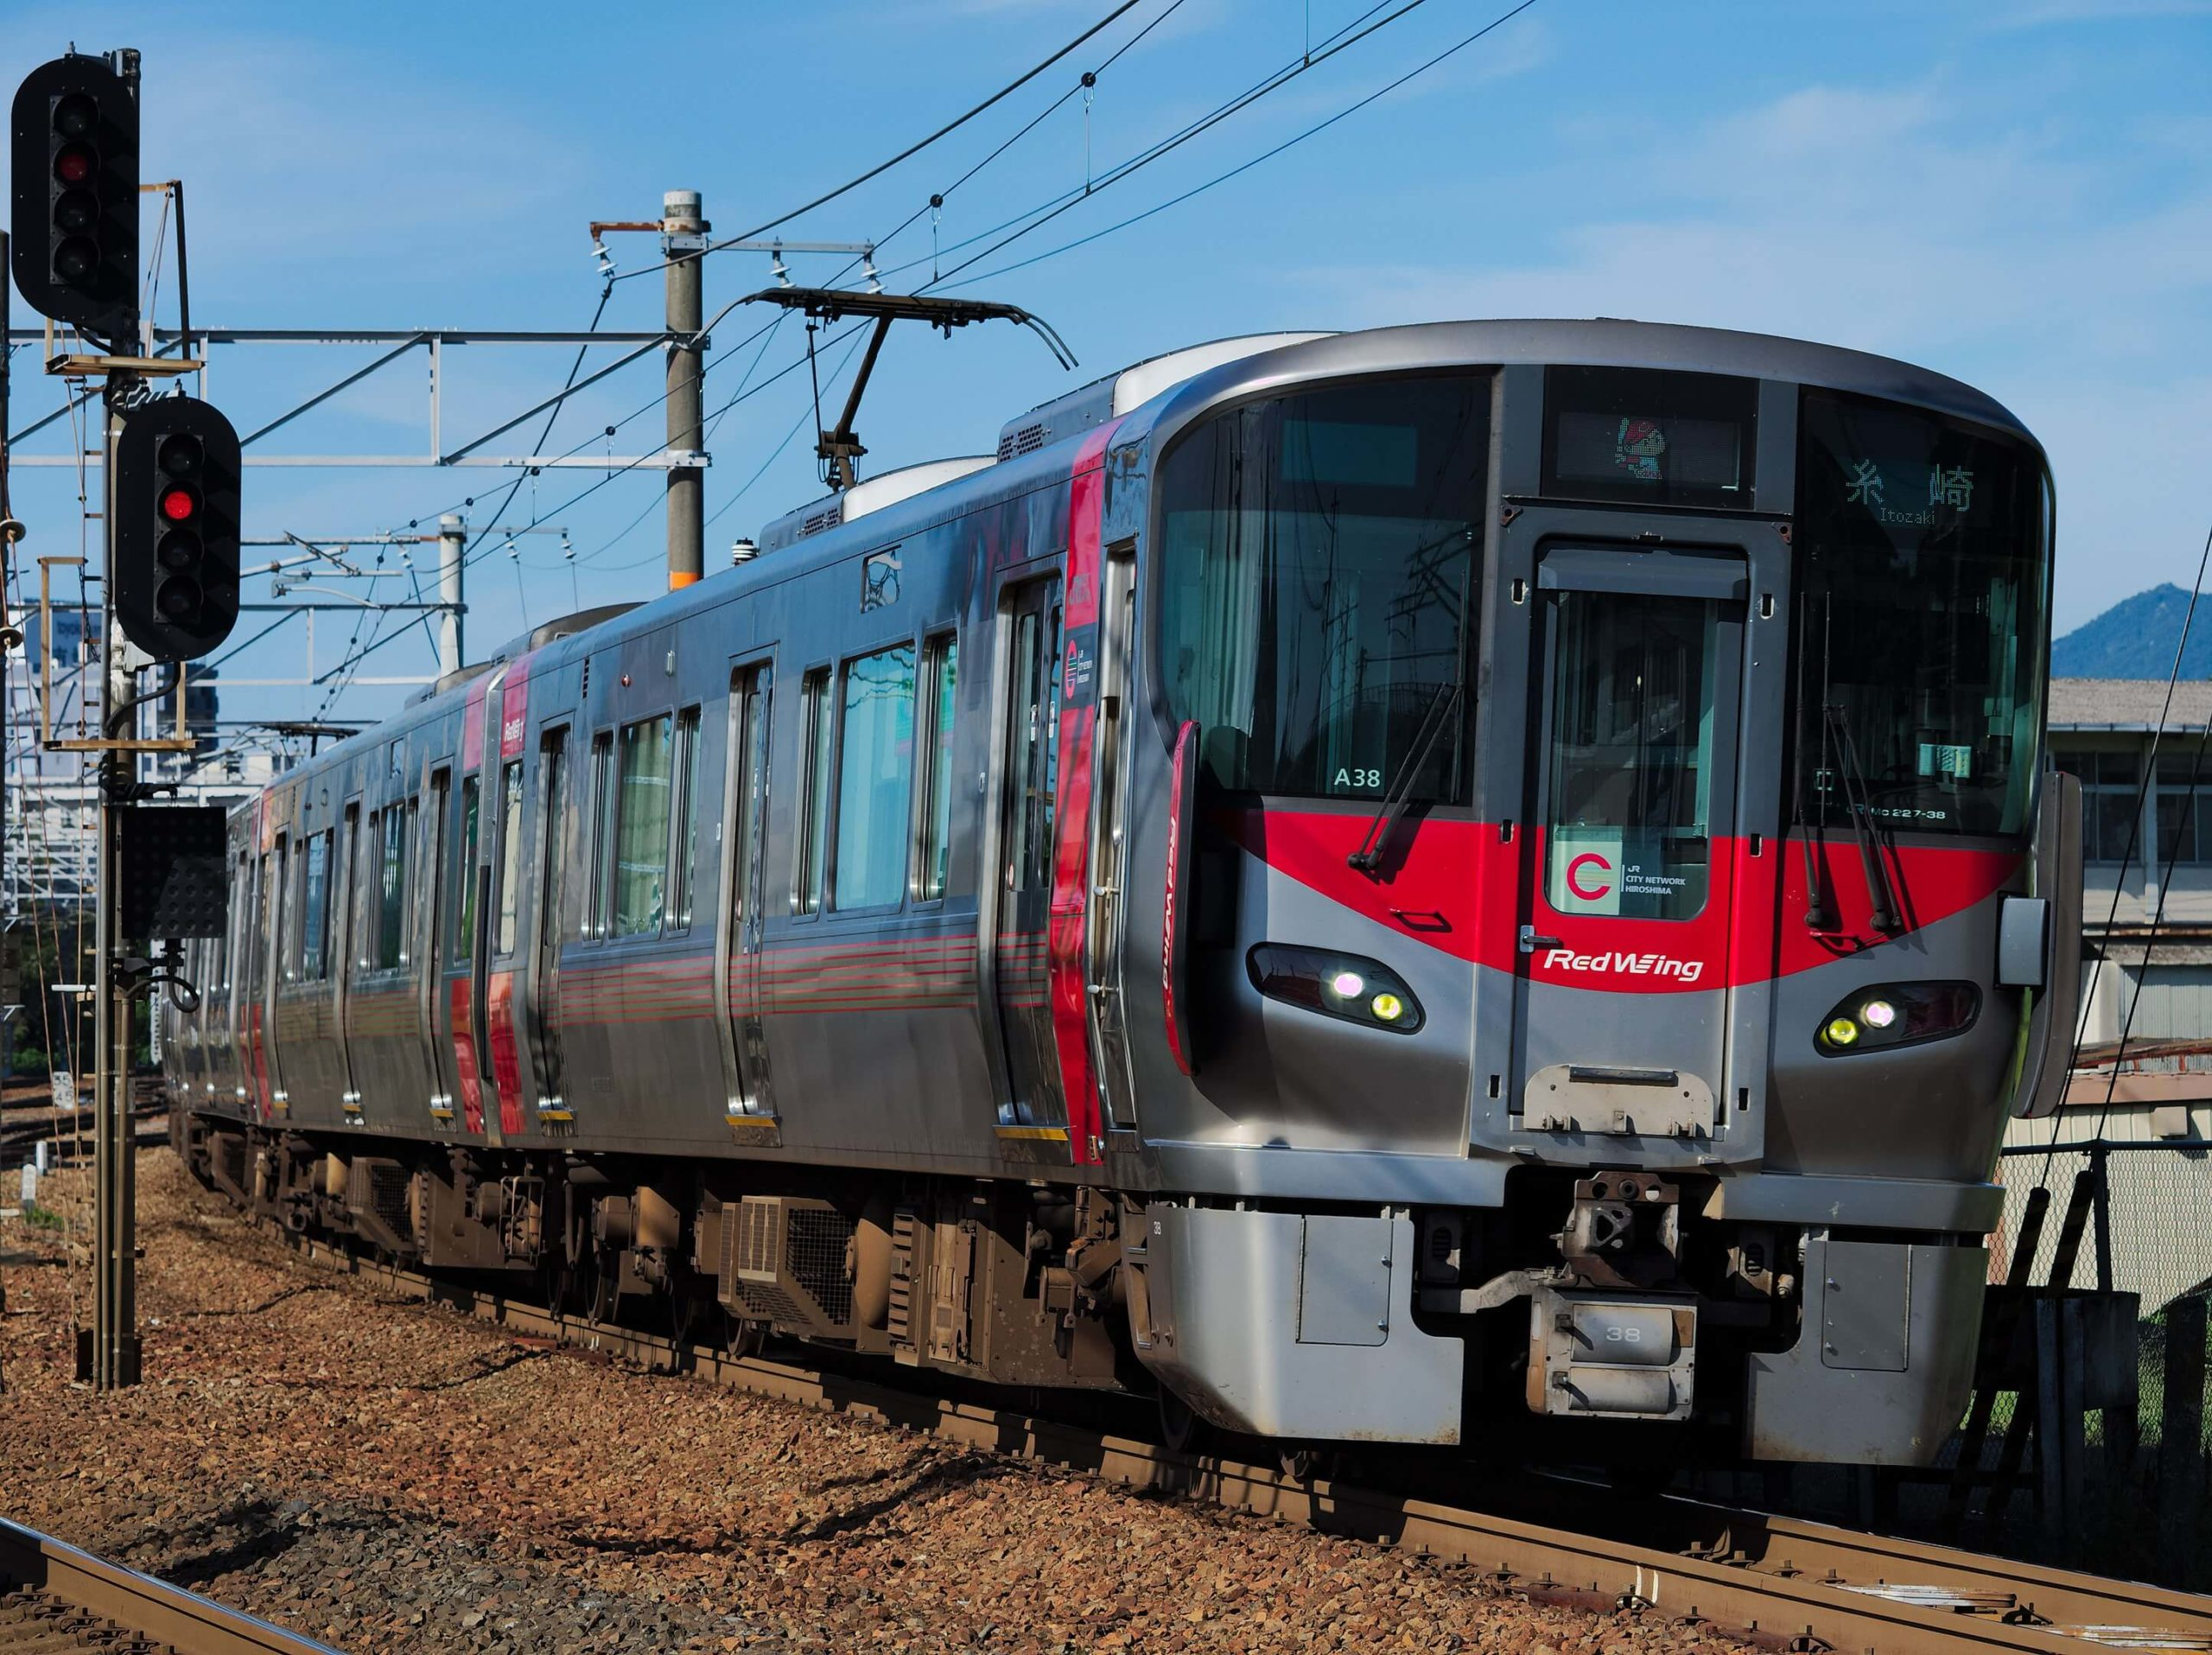 2888px 227 series A38 20170921 scaled - 2020春ダイヤ改正まとめ:山陽・山陰エリア編